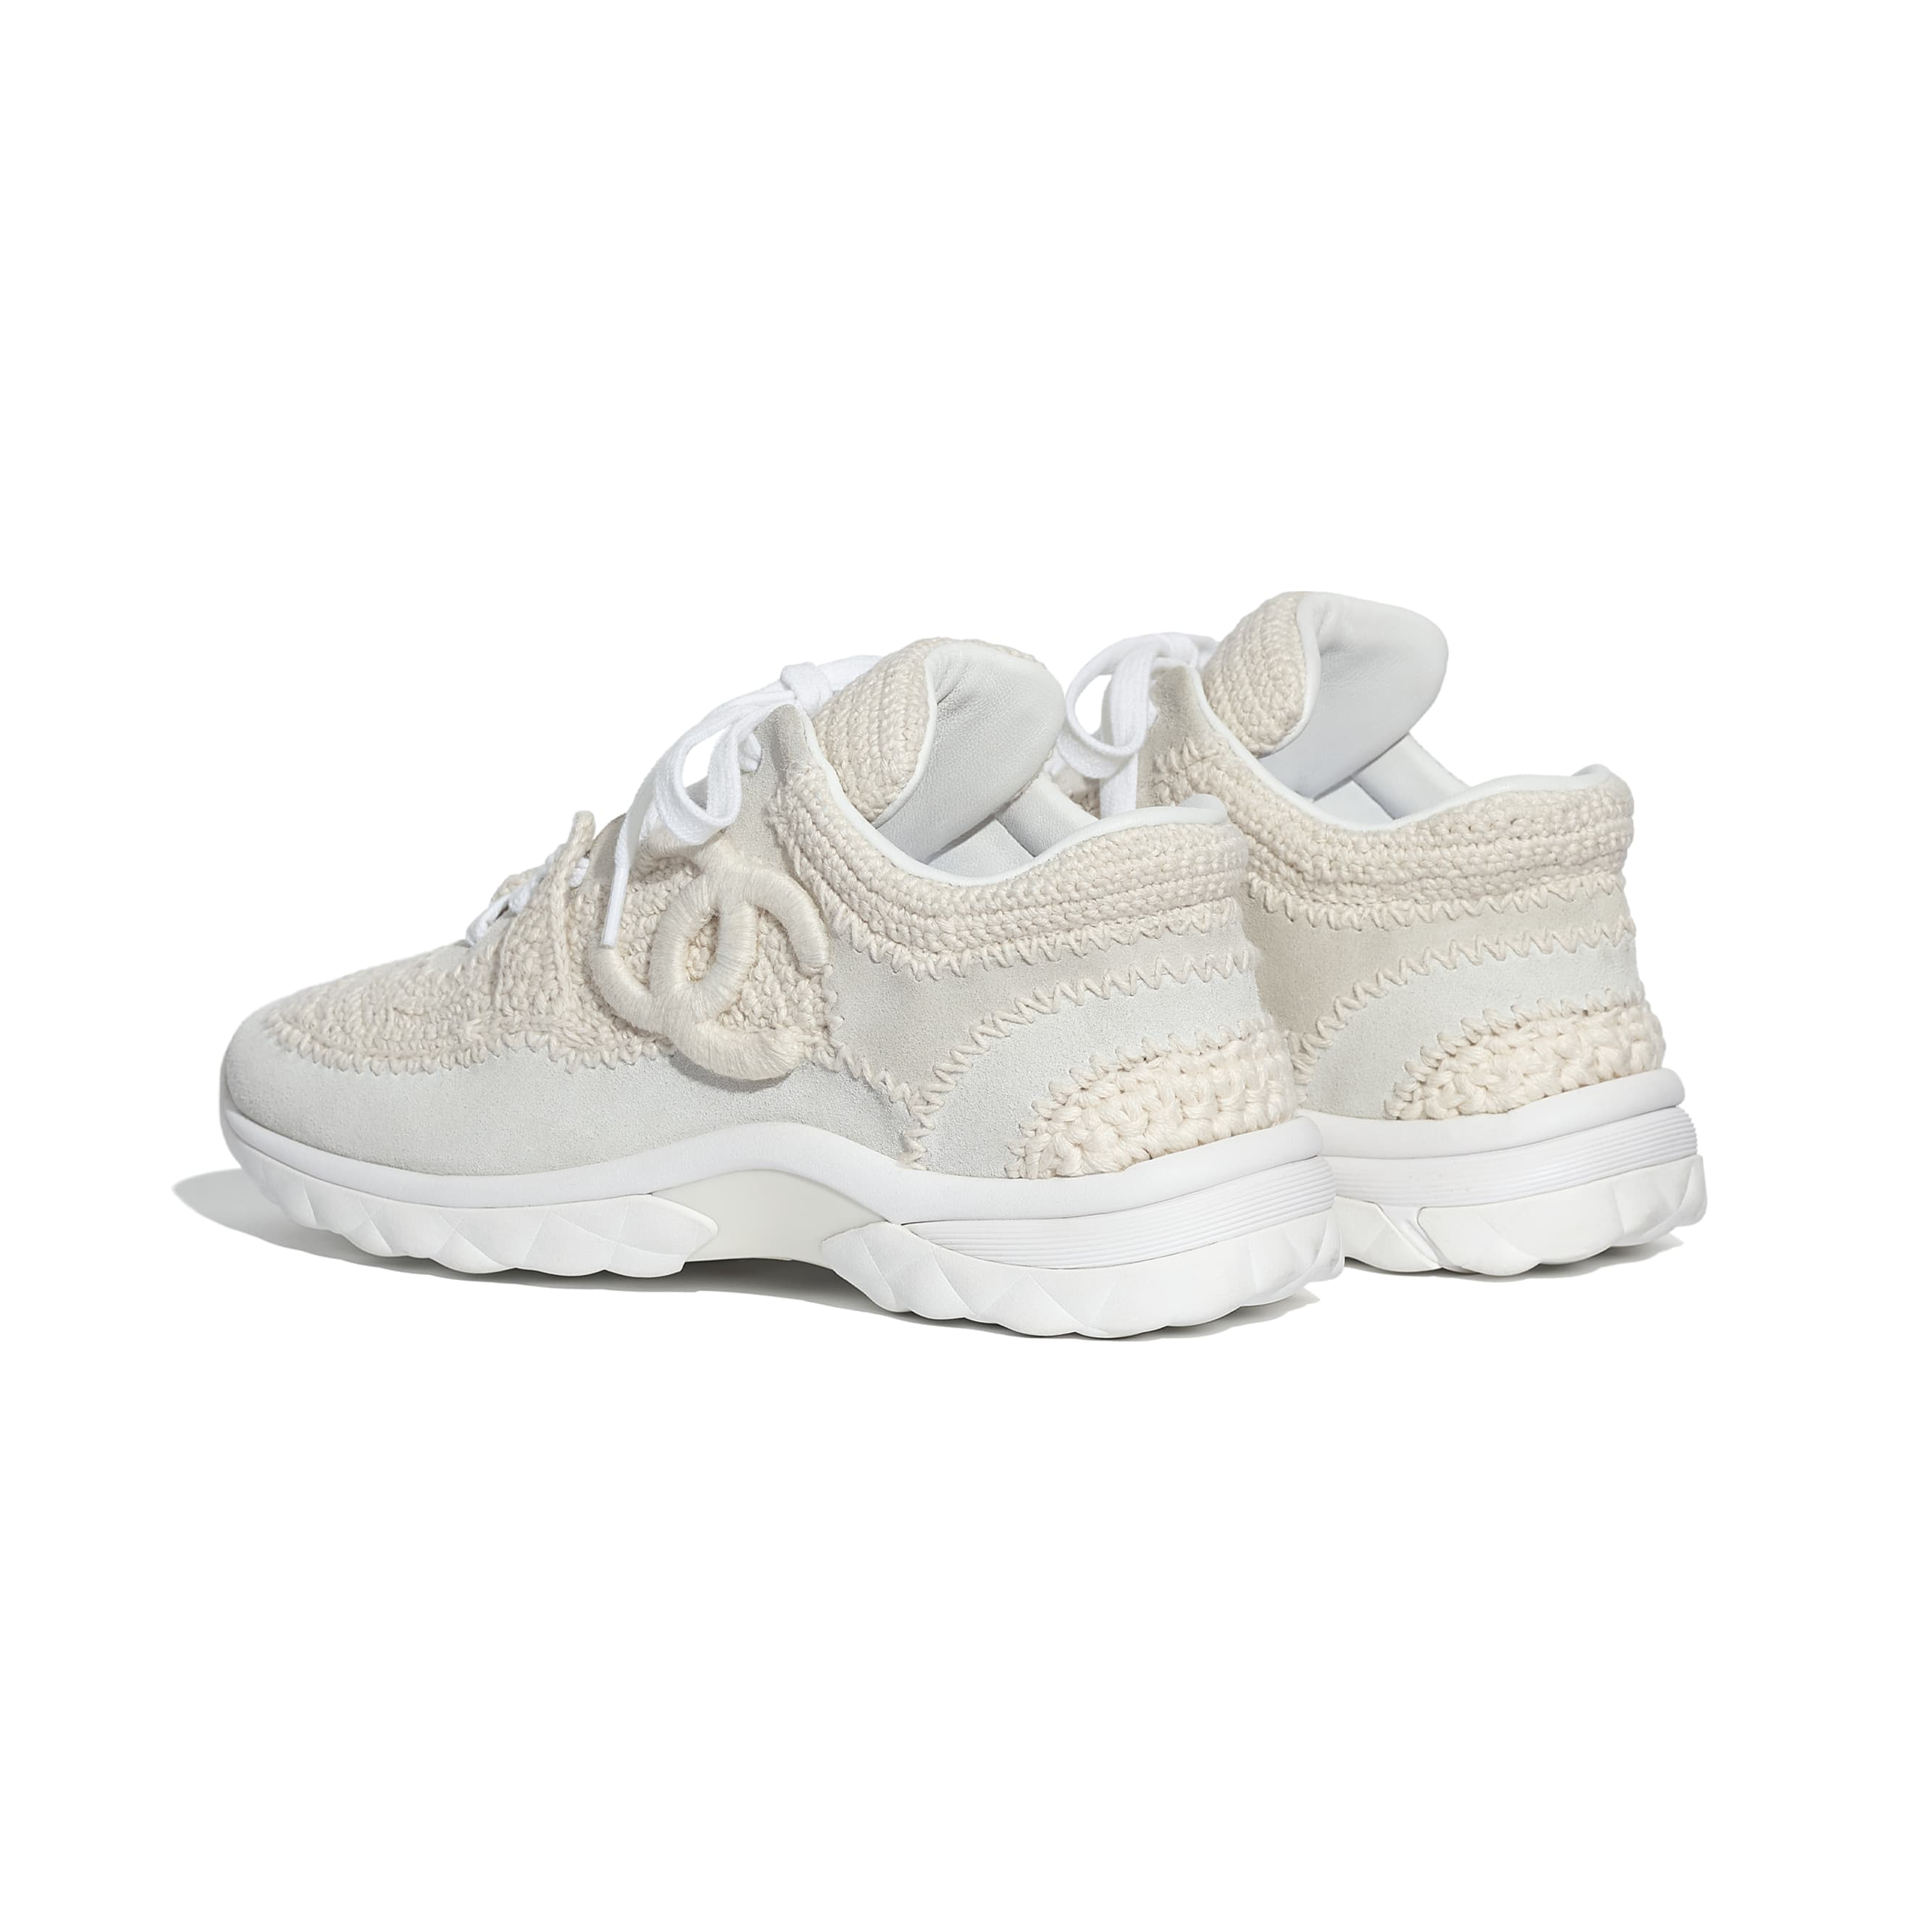 Trainers - Ivory - CHANEL - Other view - see standard sized version